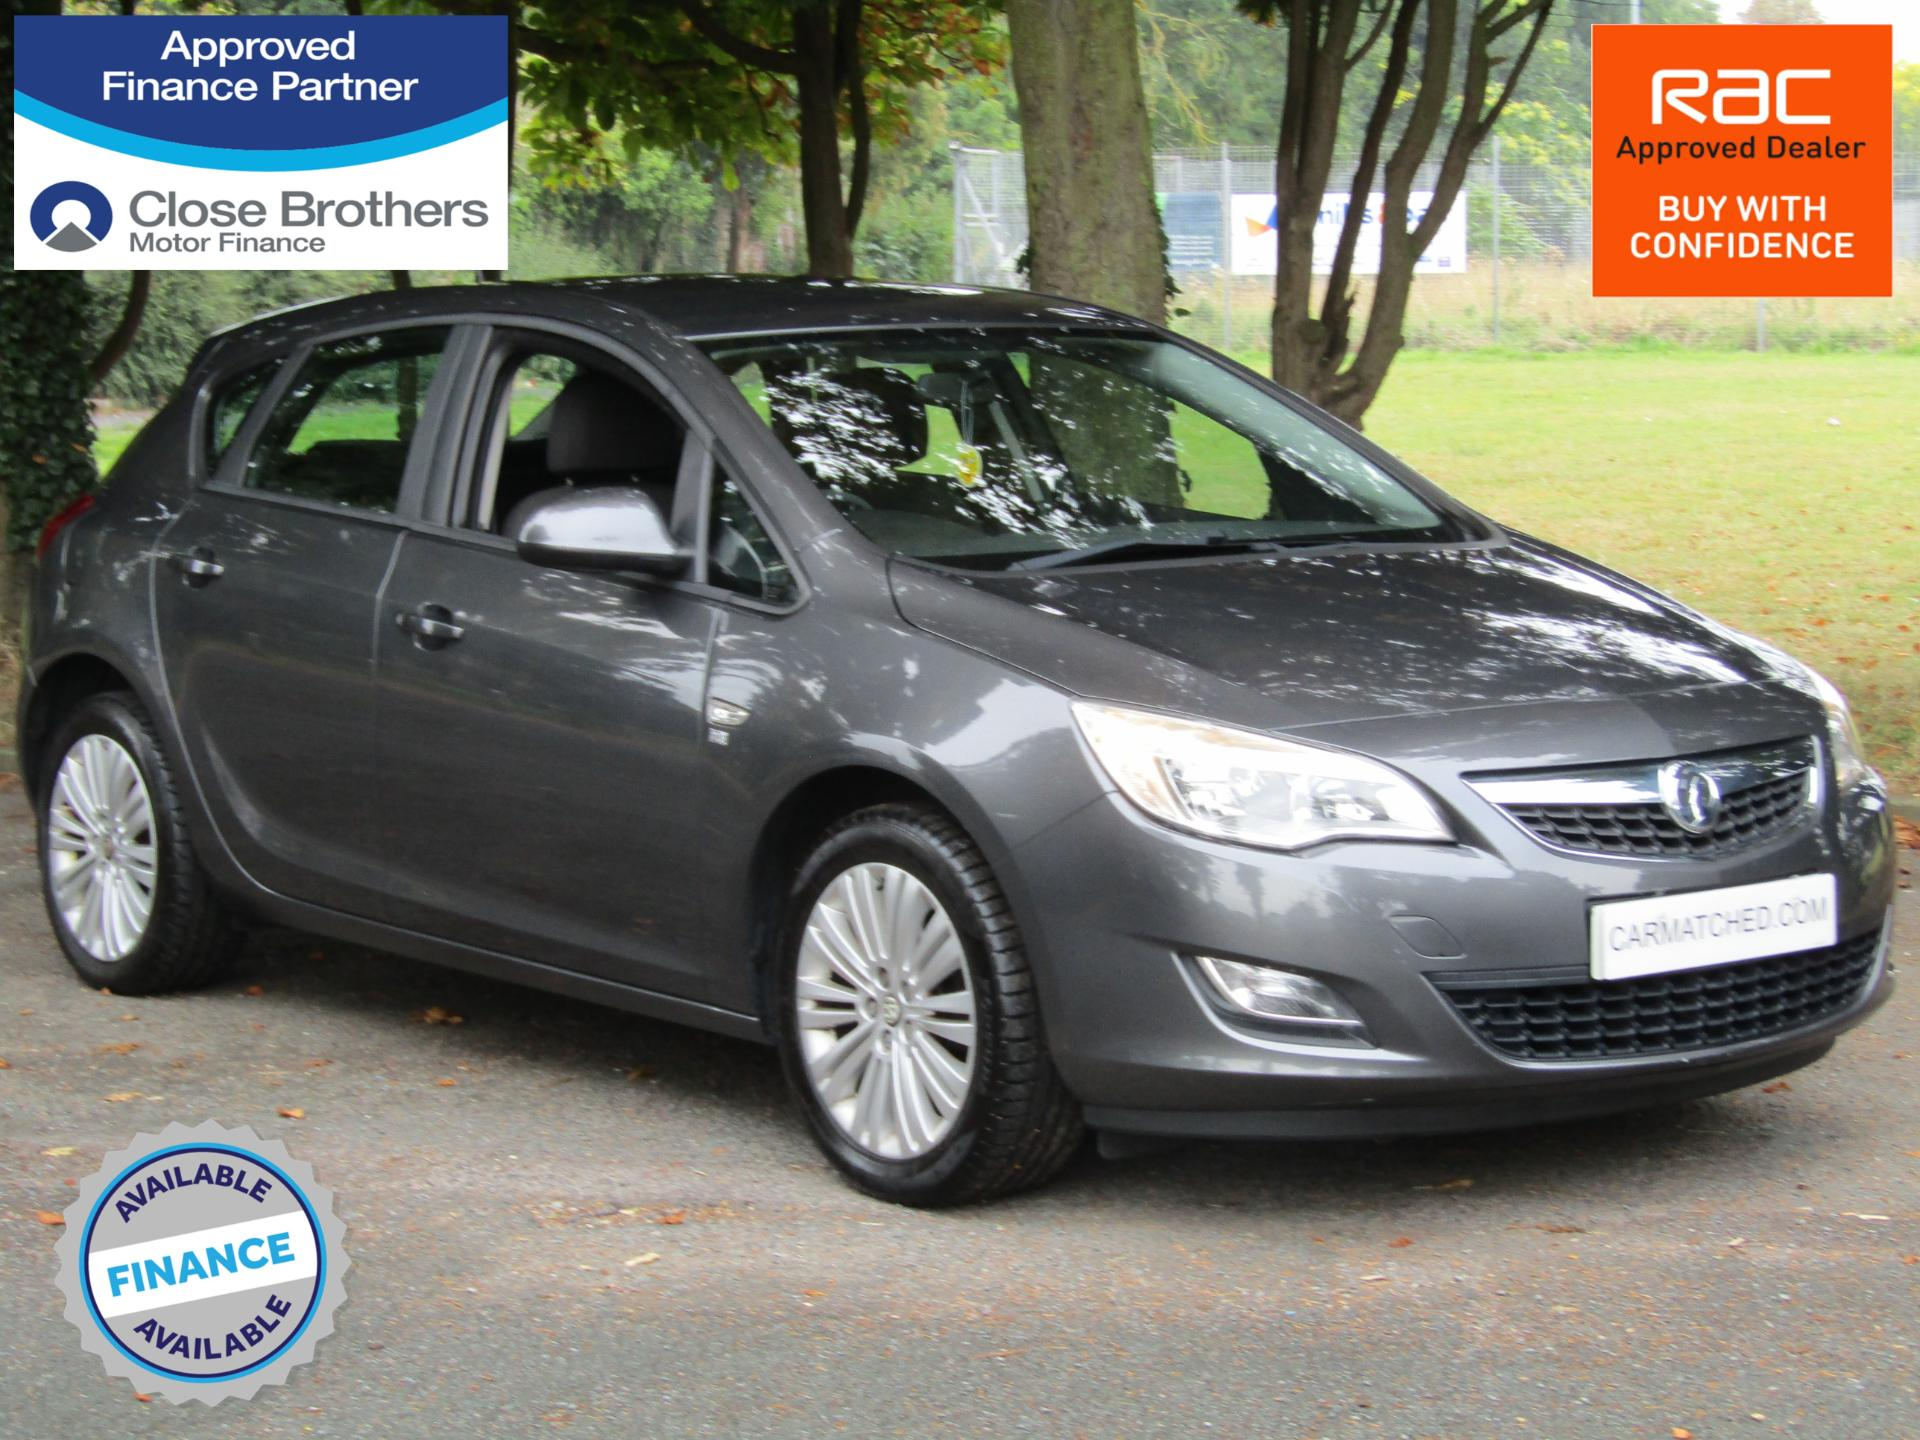 2011 (61) Vauxhall Astra 1.6i 16V Excite 5dr For Sale In Broadstairs, Kent